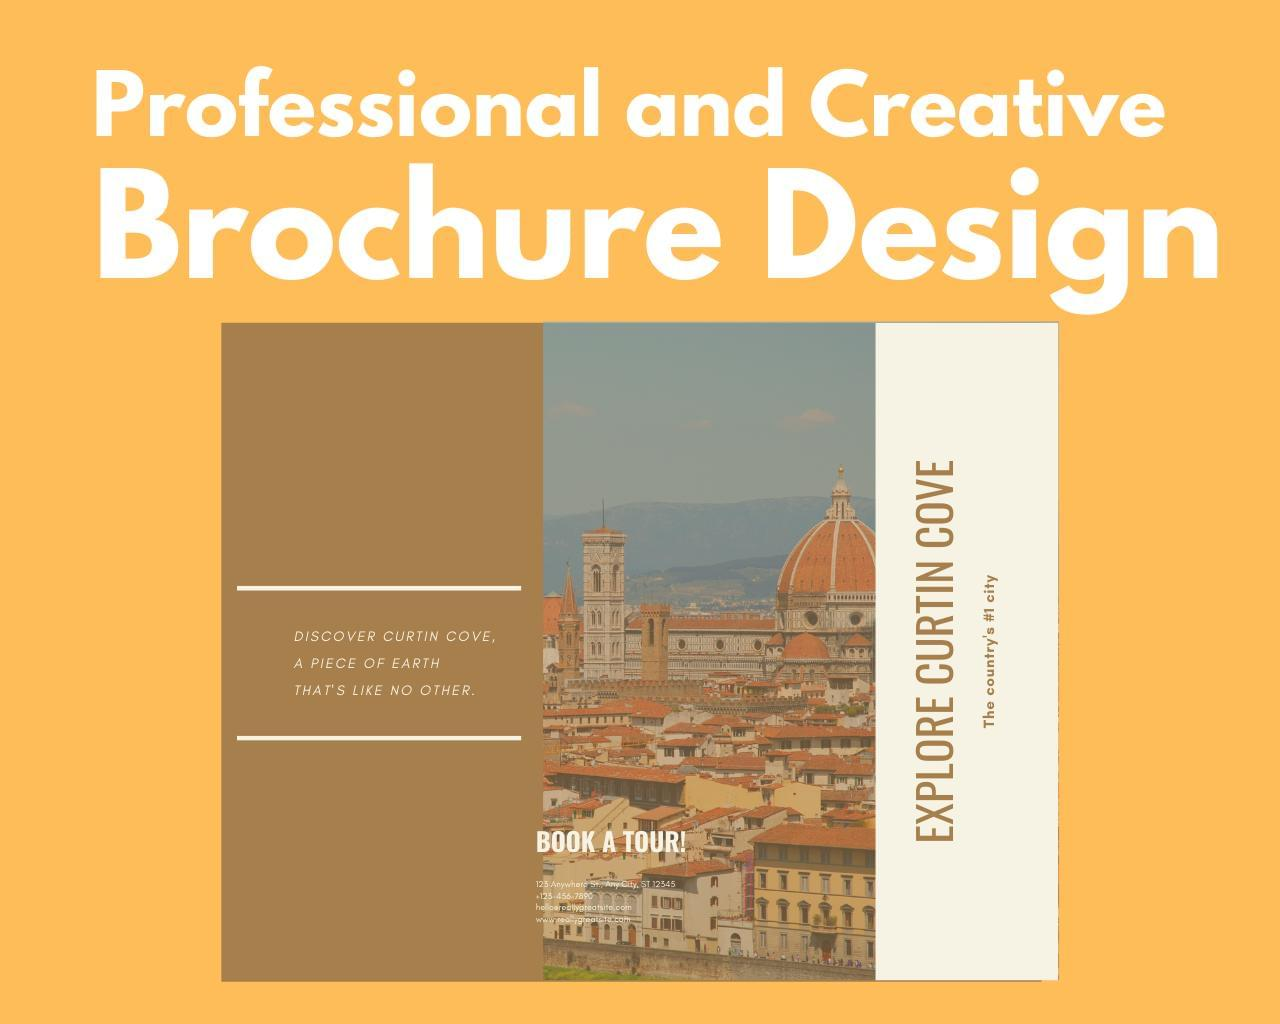 Professional and Creative Brochure Design by DePautaMadre - 119482